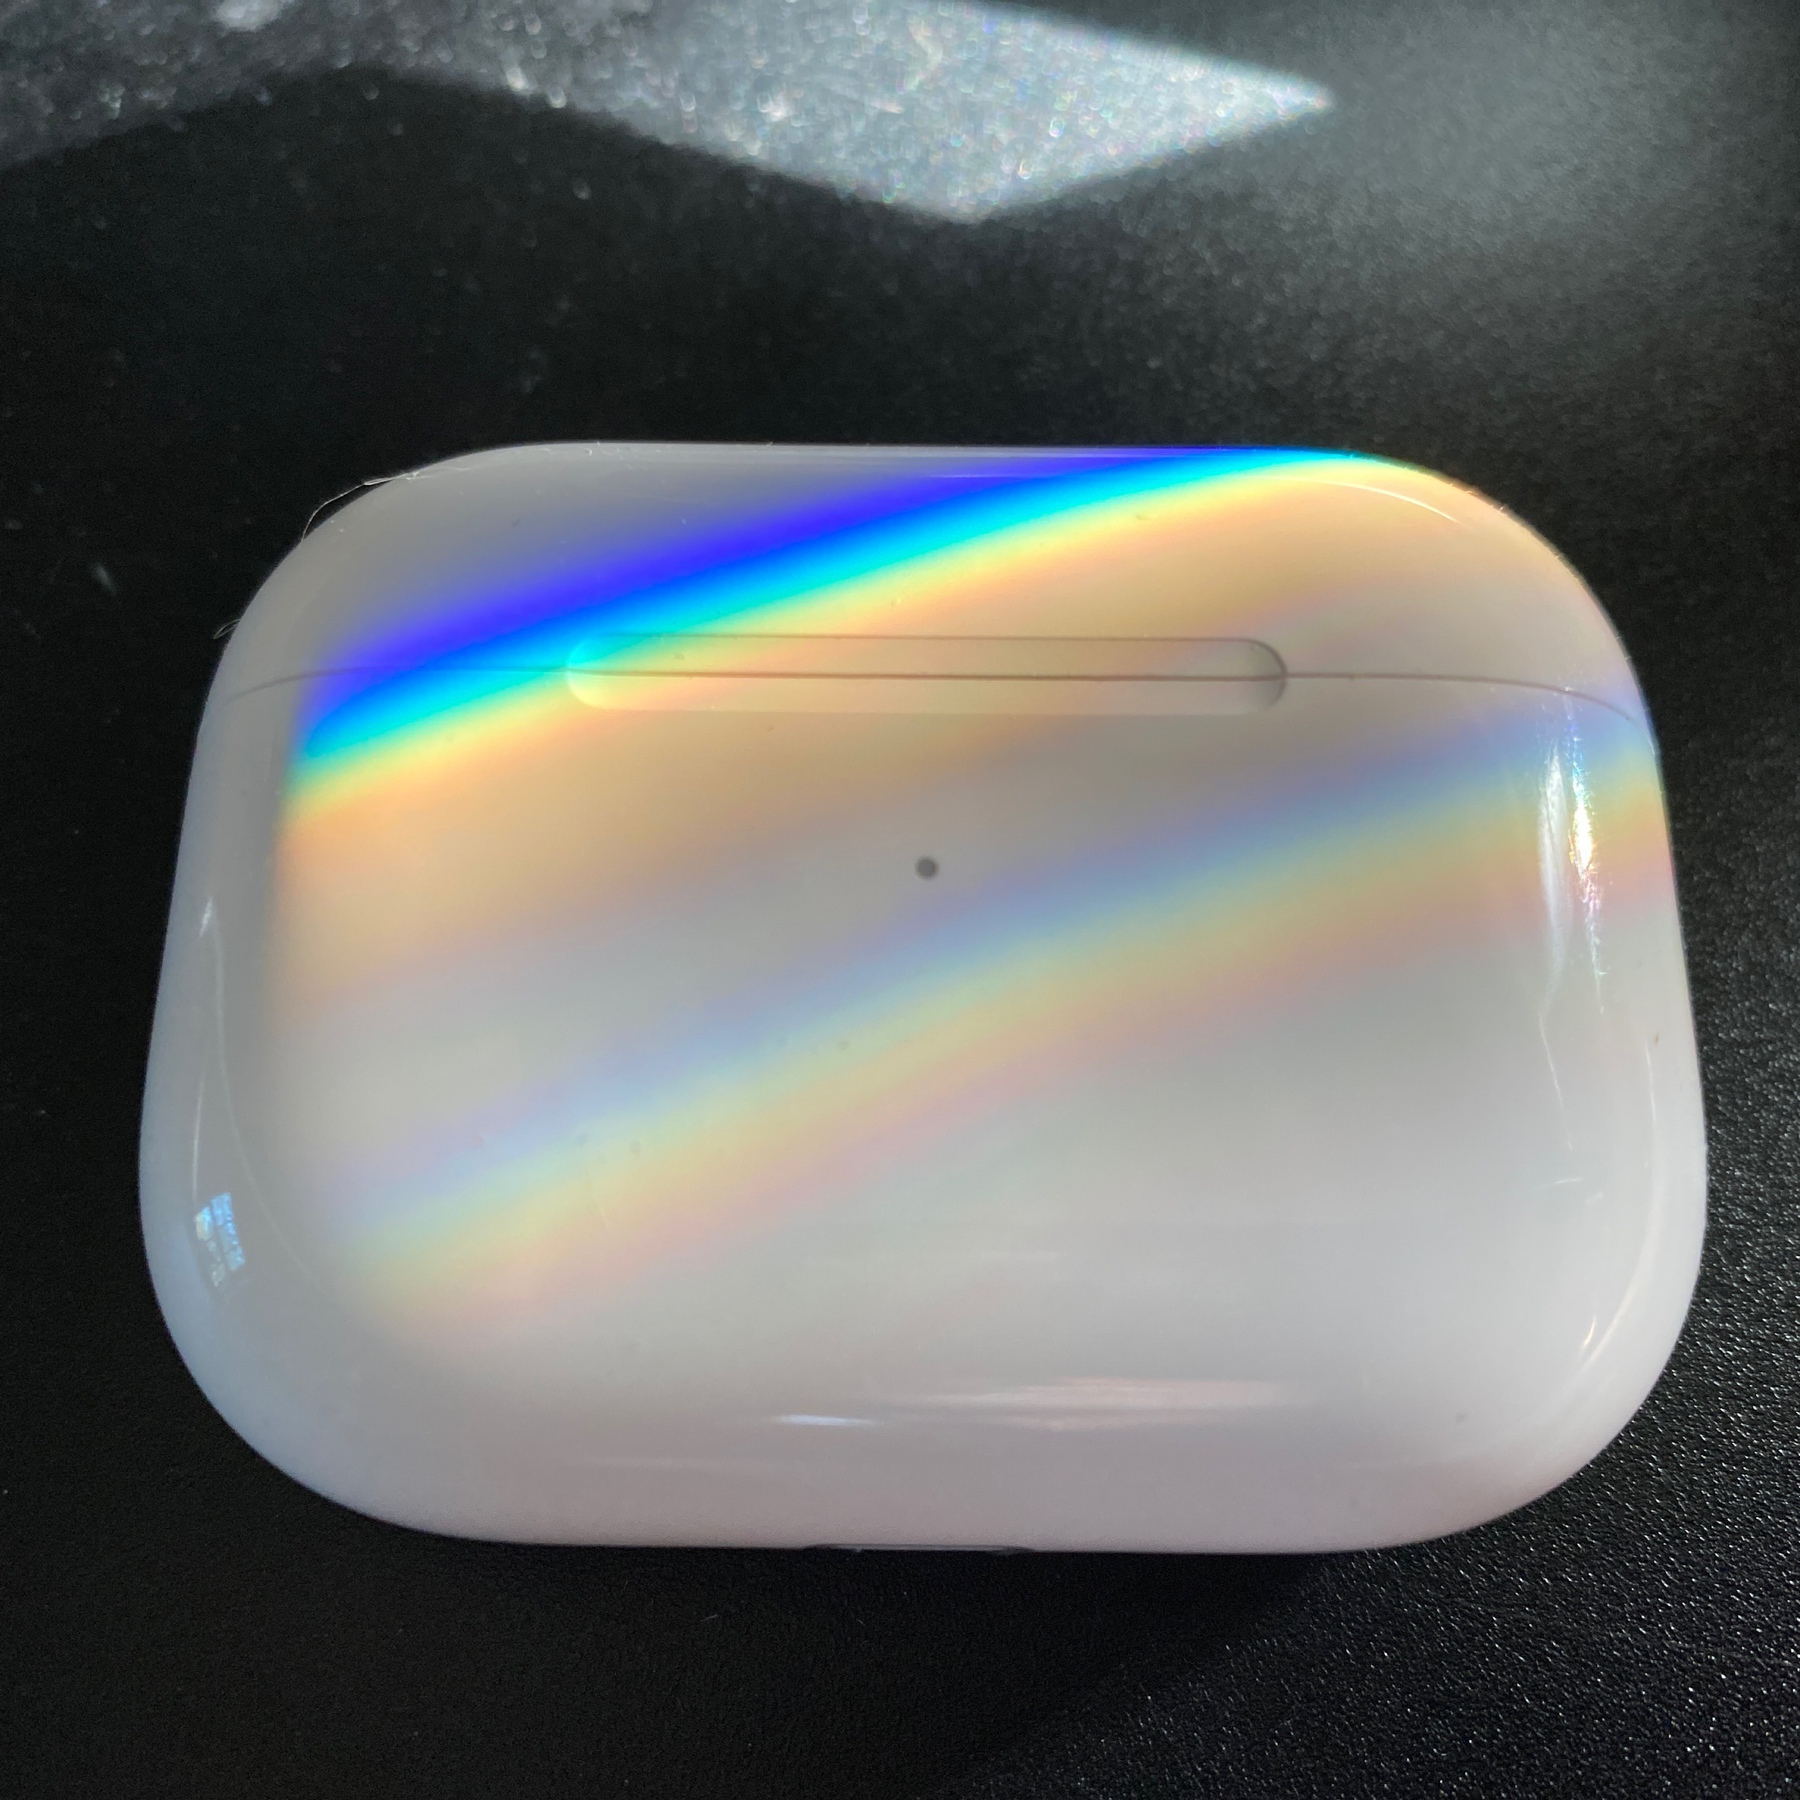 AirPods Pro case with refracted rainbow stripes on it.